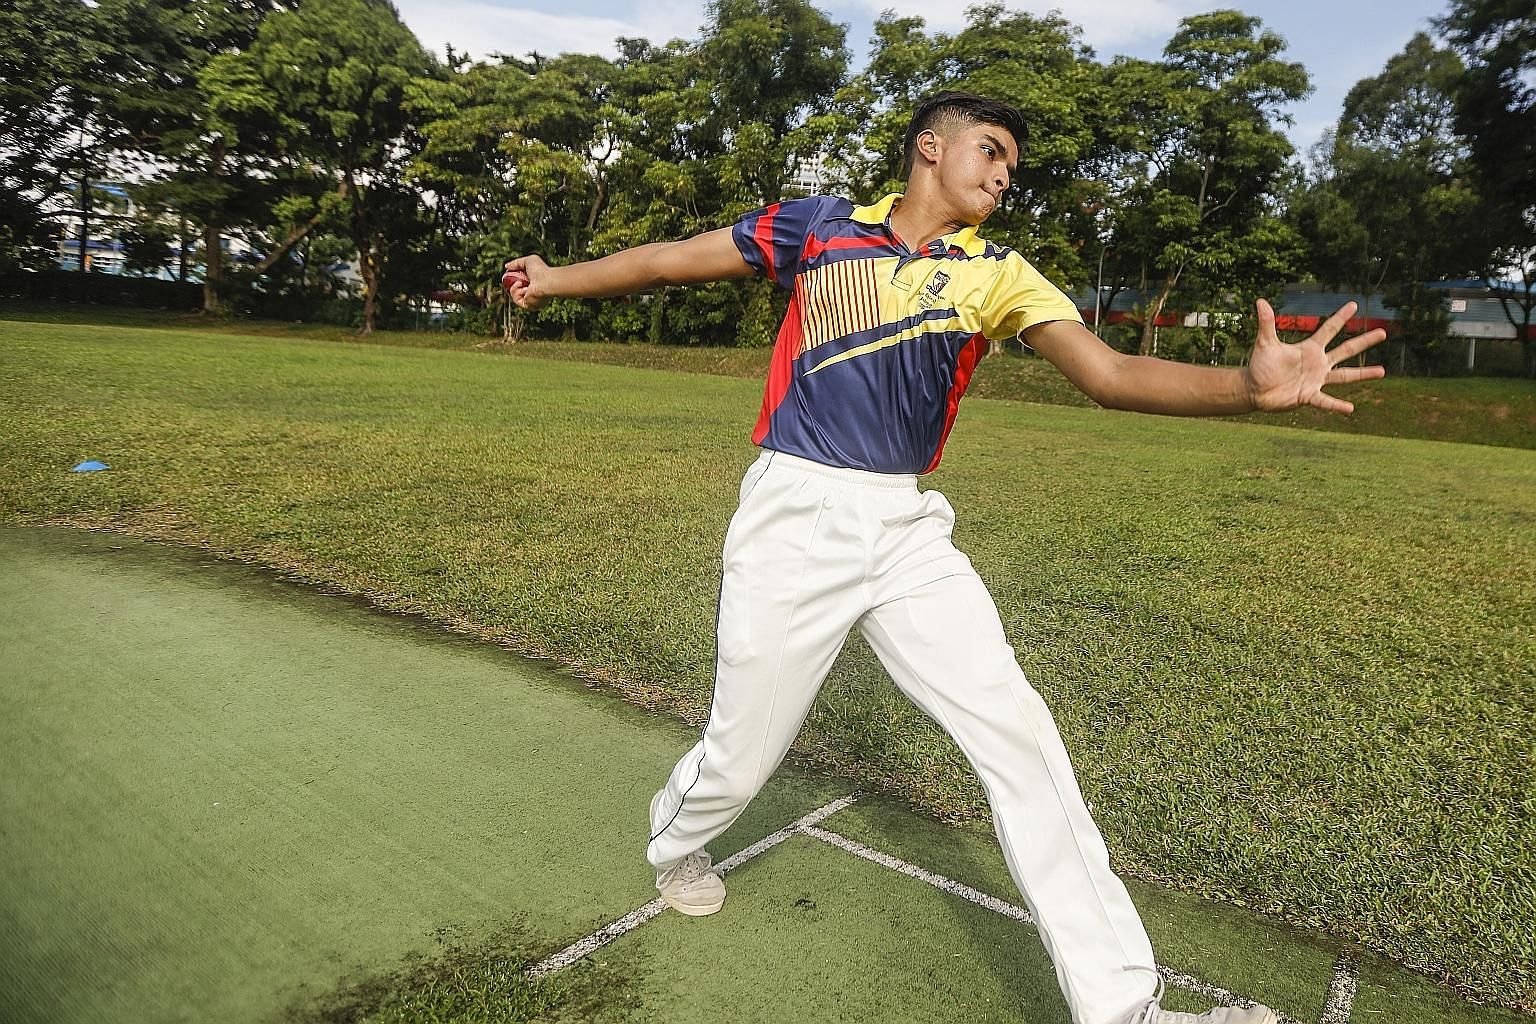 Gune Atharva Rahul and his younger brother are carrying on the family's cricket tradition. The 16-year-old's late grandfather had played the sport and passed it on to his father, who now trains the two boys. ST PHOTO: ZHANG XUAN